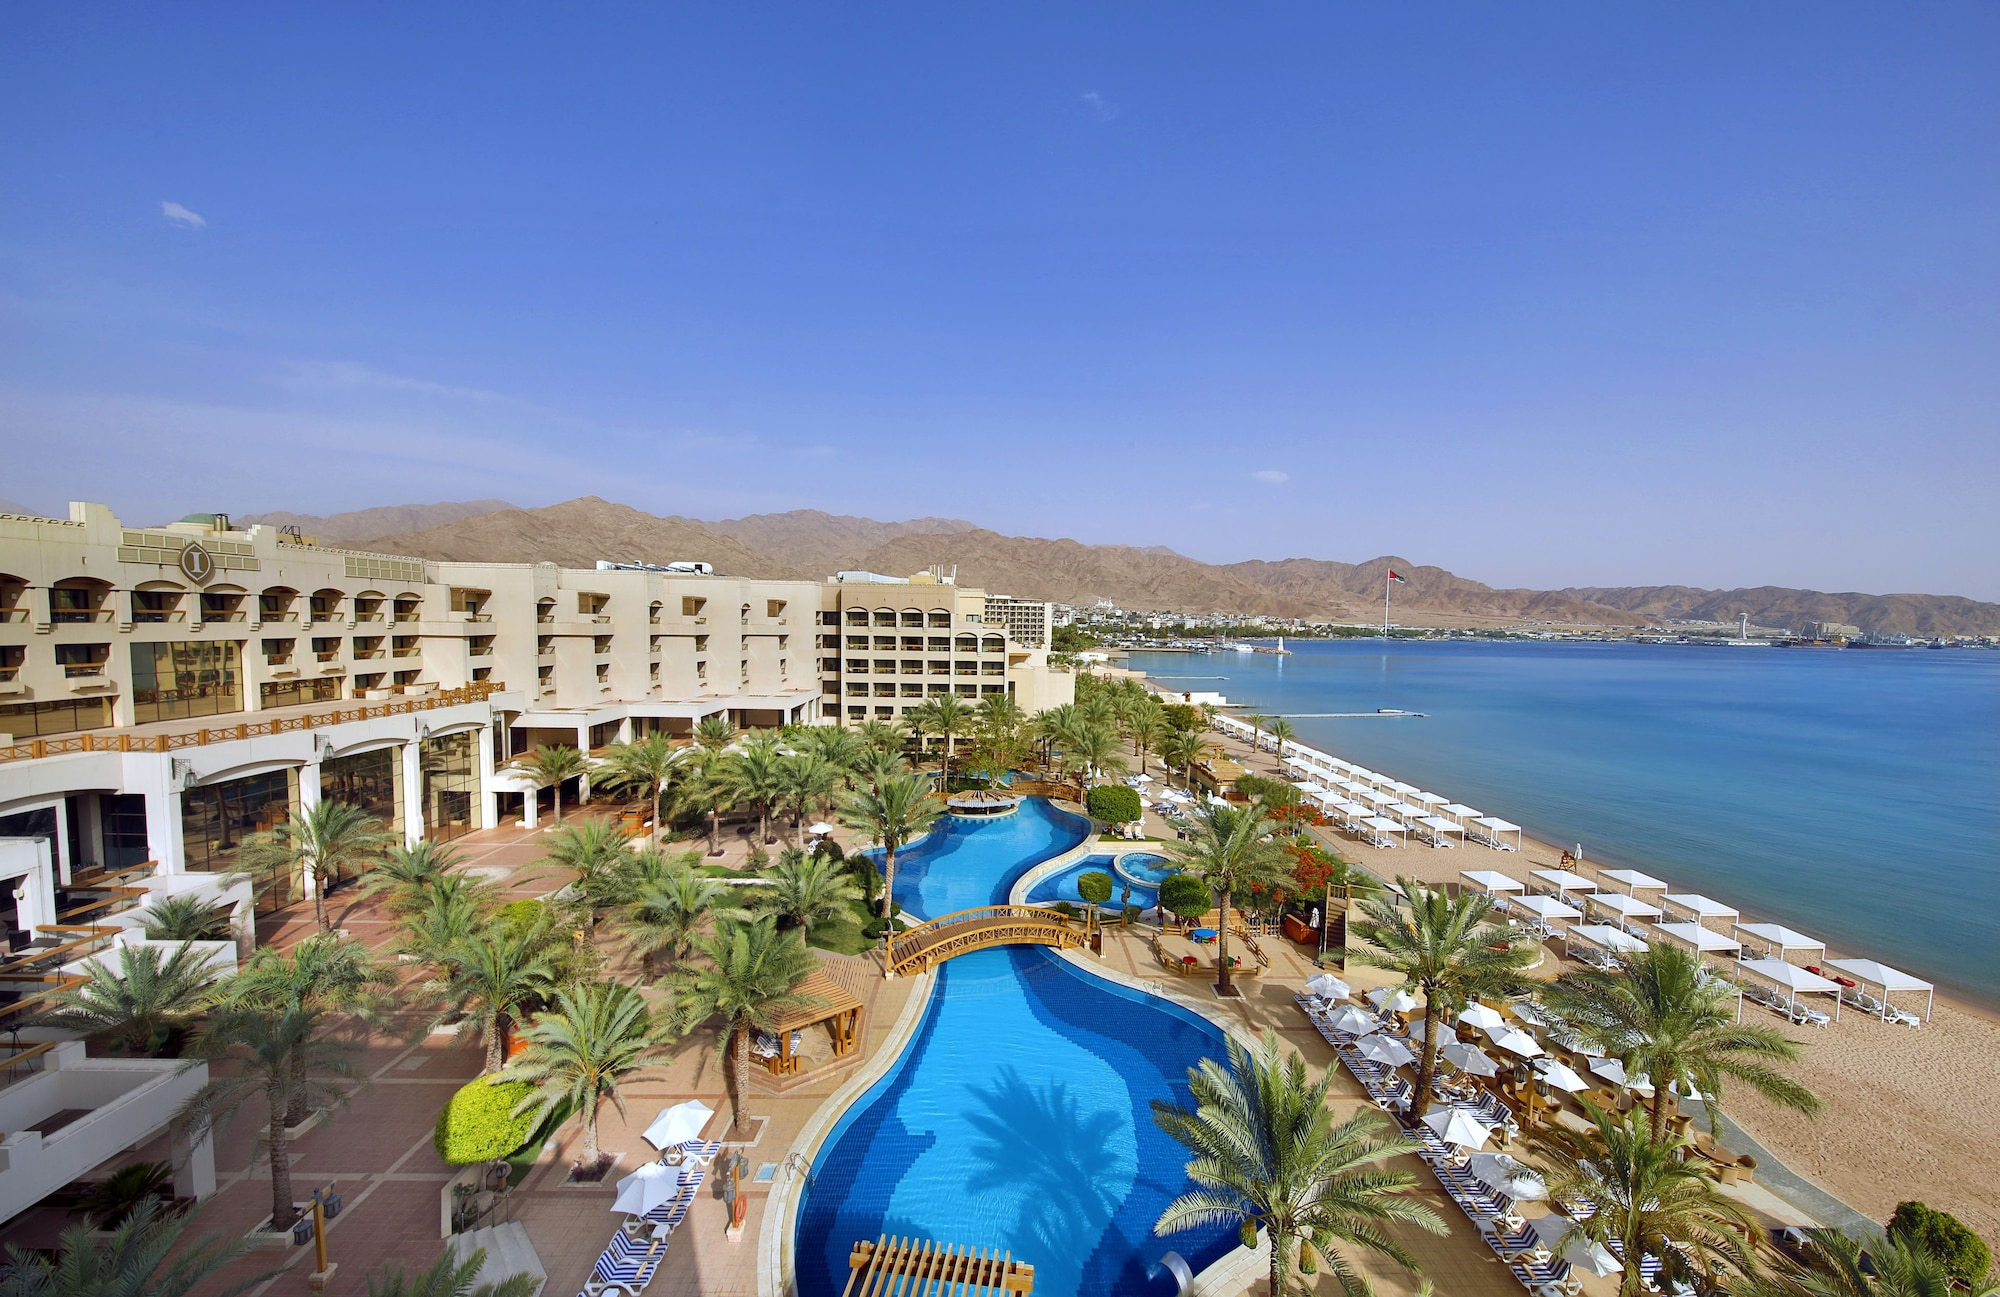 InterContinental Resort Aqaba, Aqaba